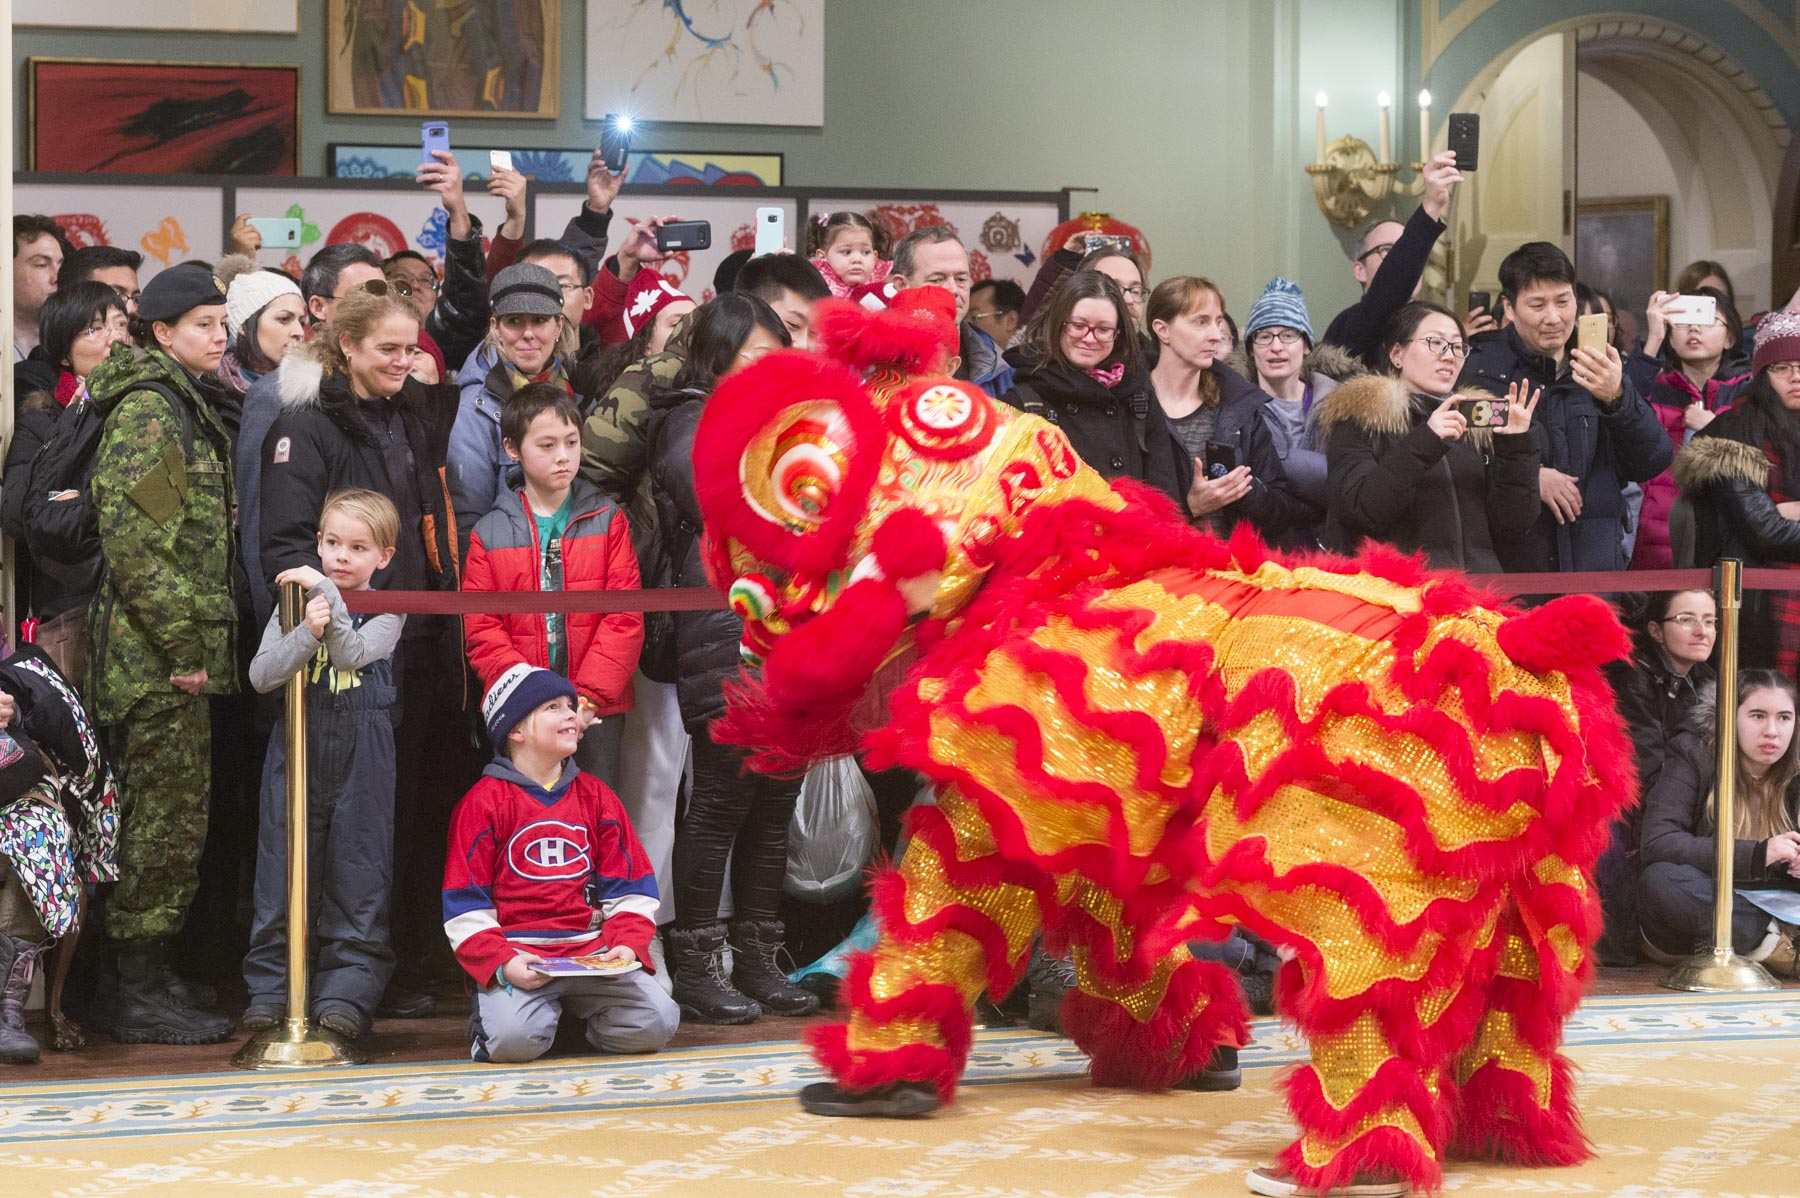 A traditional Chinese lion dance was performed inside the Ballroom of Rideau Hall. The activity was offered by the Embassy of the People's Republic of China.